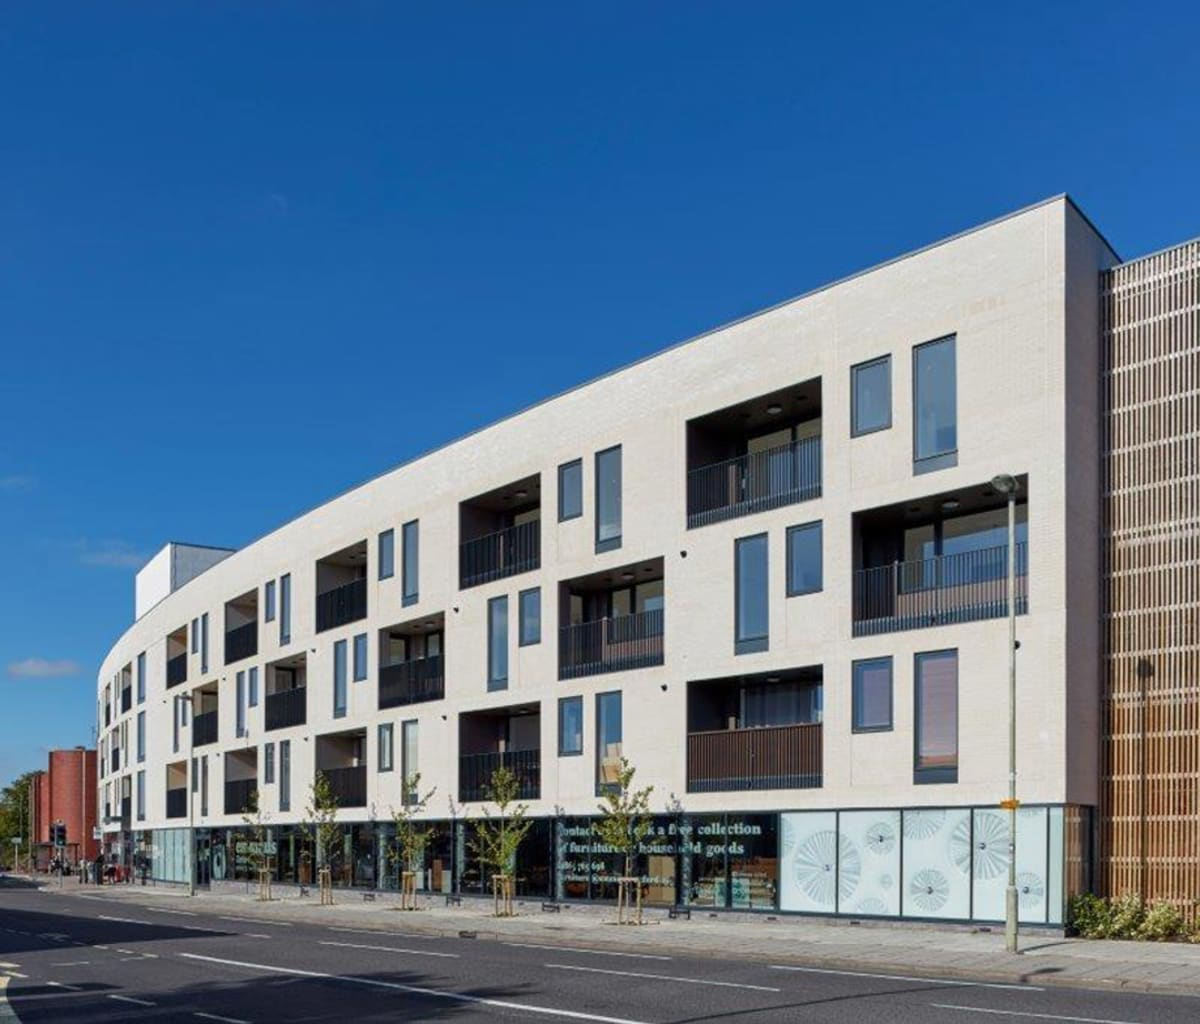 Barns Road residential units